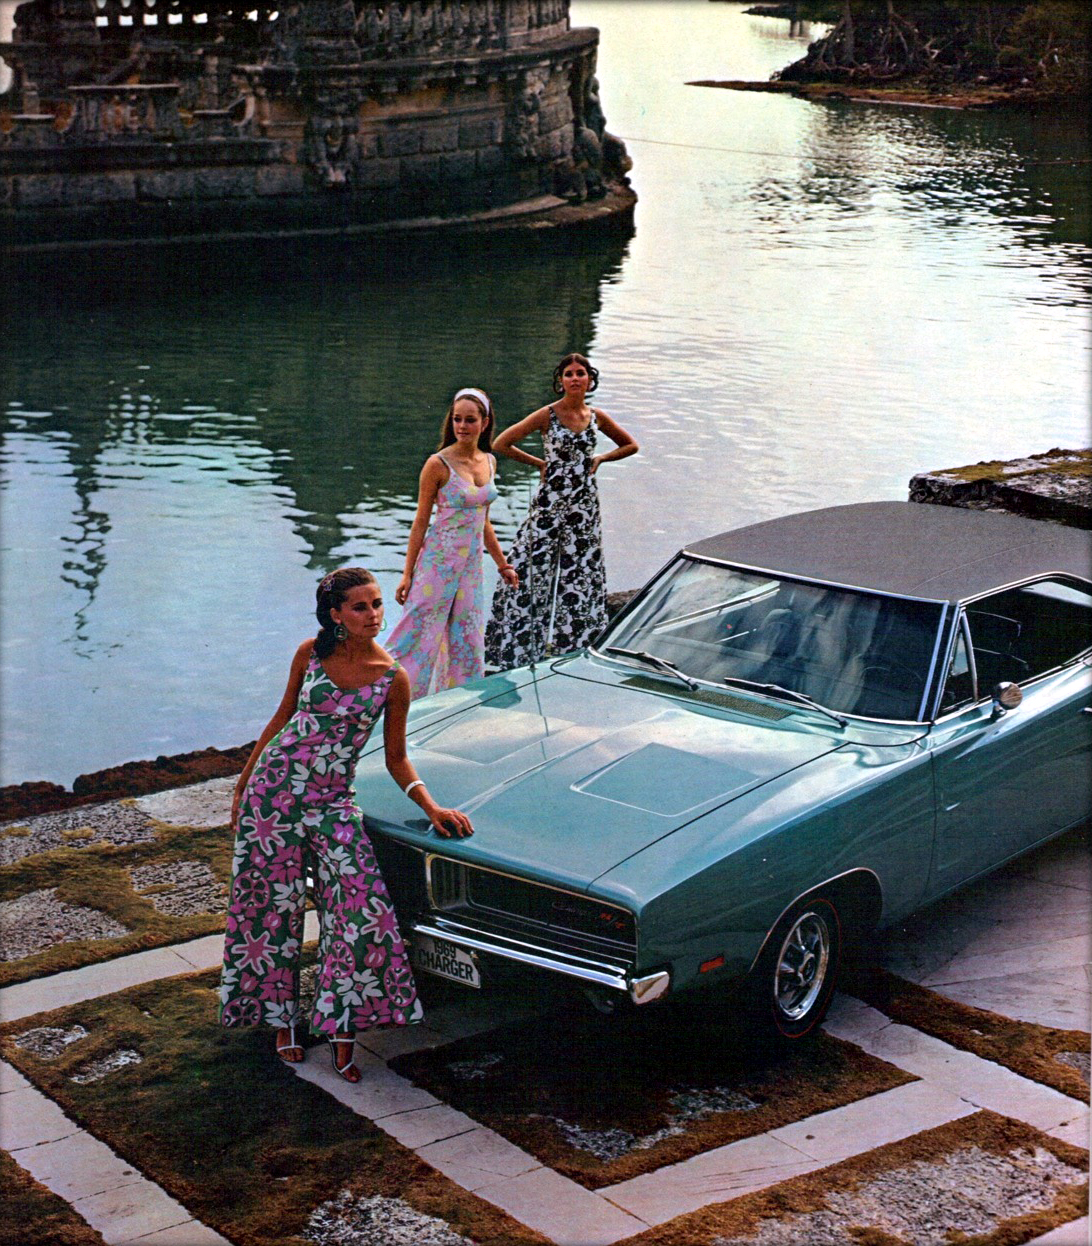 Just A Car Guy 1 28 18 2 4 Ppg Red Paint Code Honda Civic Codes Pioneer Radio Wiring Years Later And Finally 2nd Photo Shows Up From The Blue Charger Fashion Clothes Shoot At Vizcaya Museum Gardens In Miami